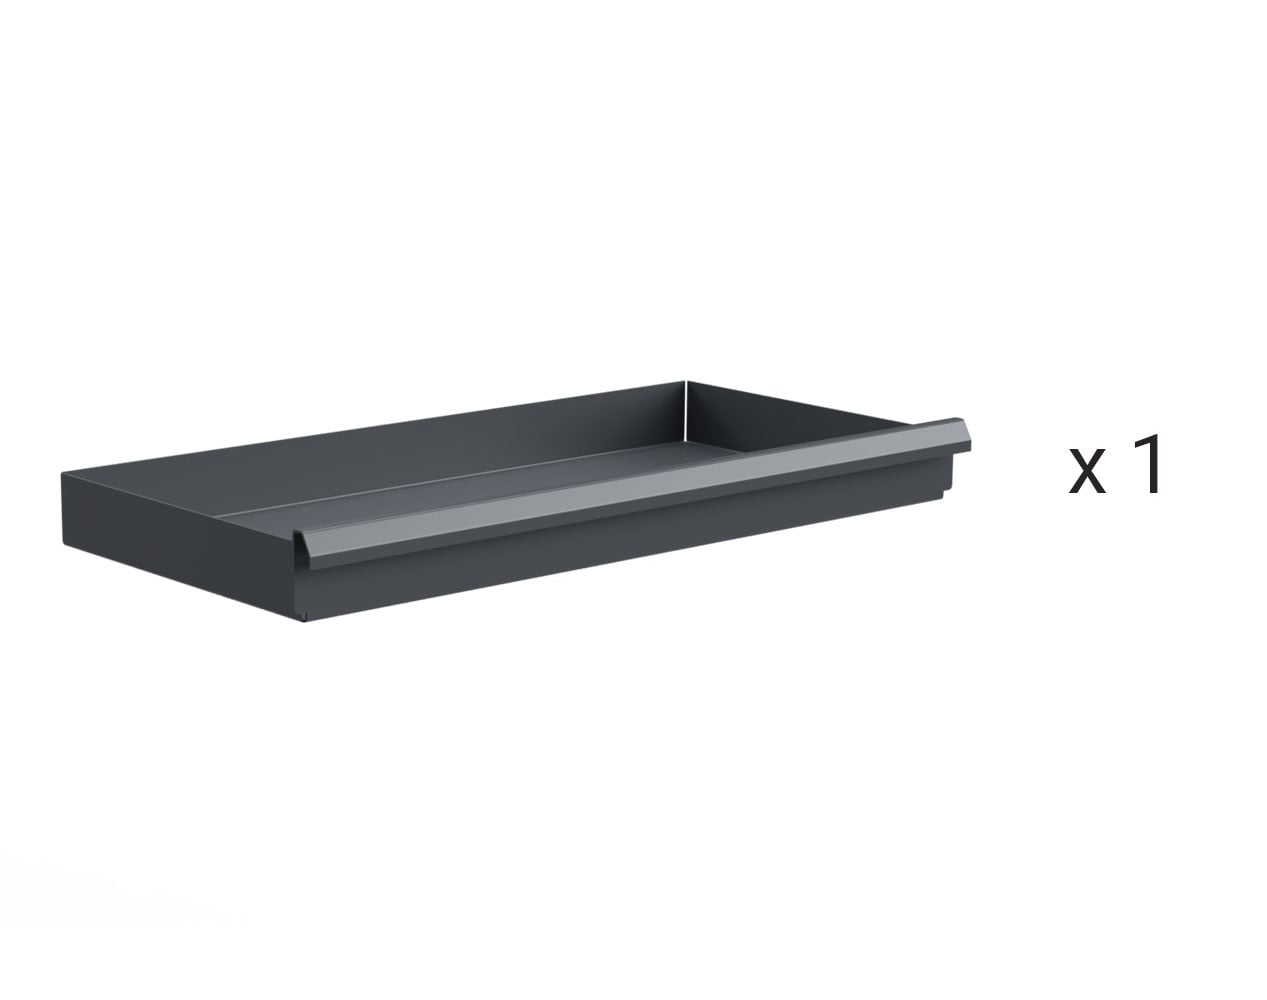 Heavy Duty Drawer Kit with (1) 4 in. Drawer for 36 in. W x 24 in. D Cabinet